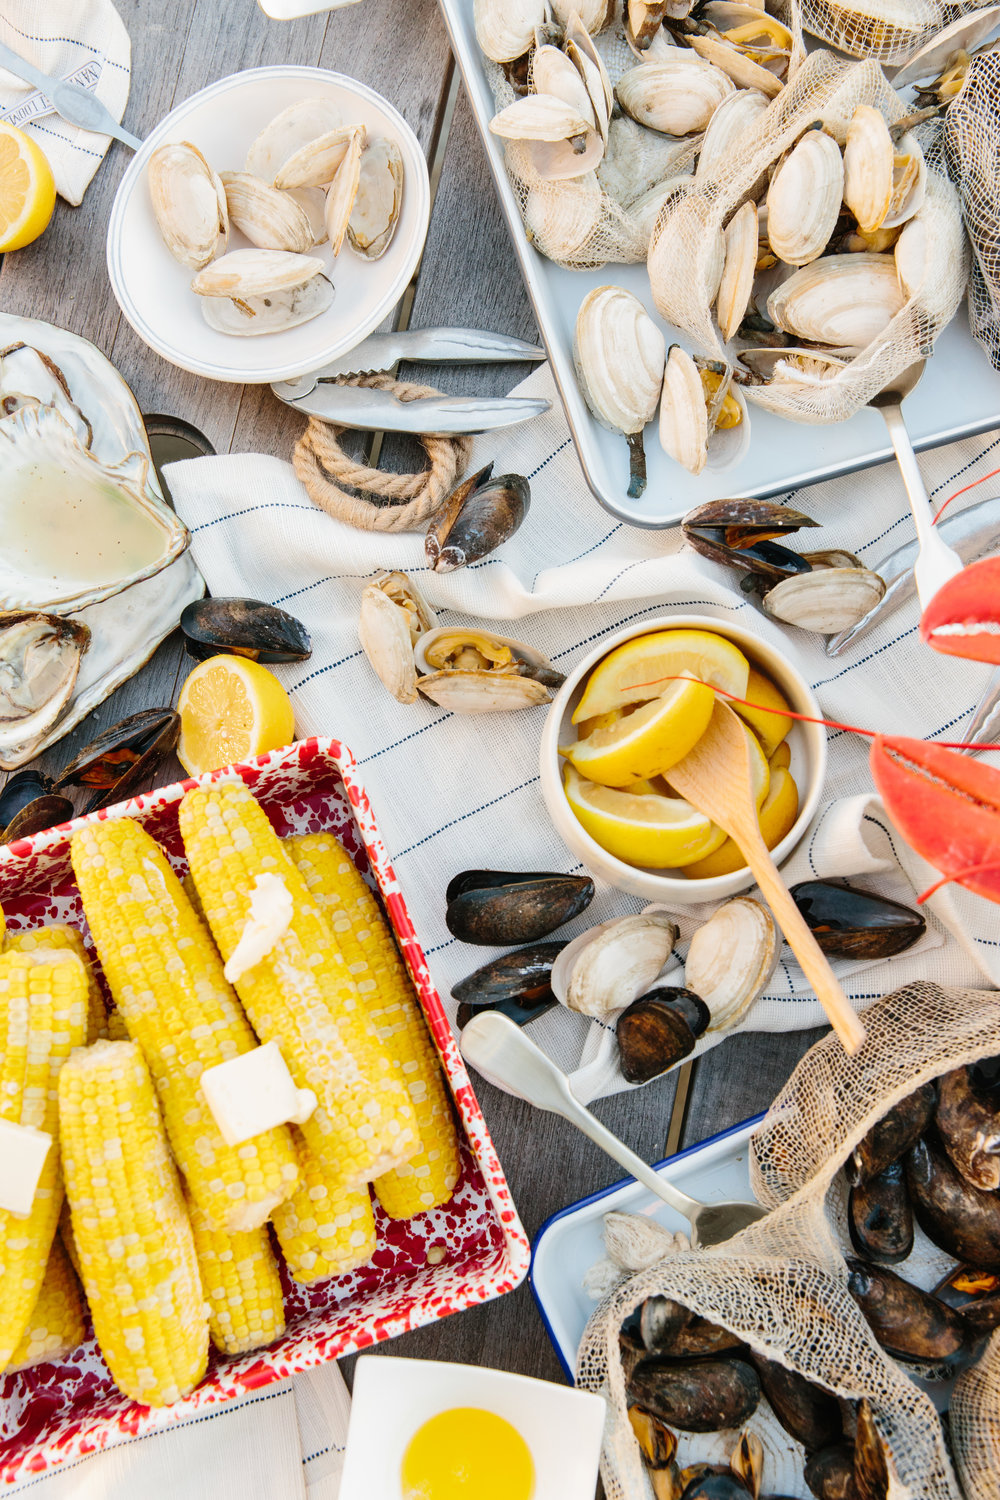 Summer Entertaining in New England Lobster Boil from Abby Capalbo | Photography: Erin McGinn